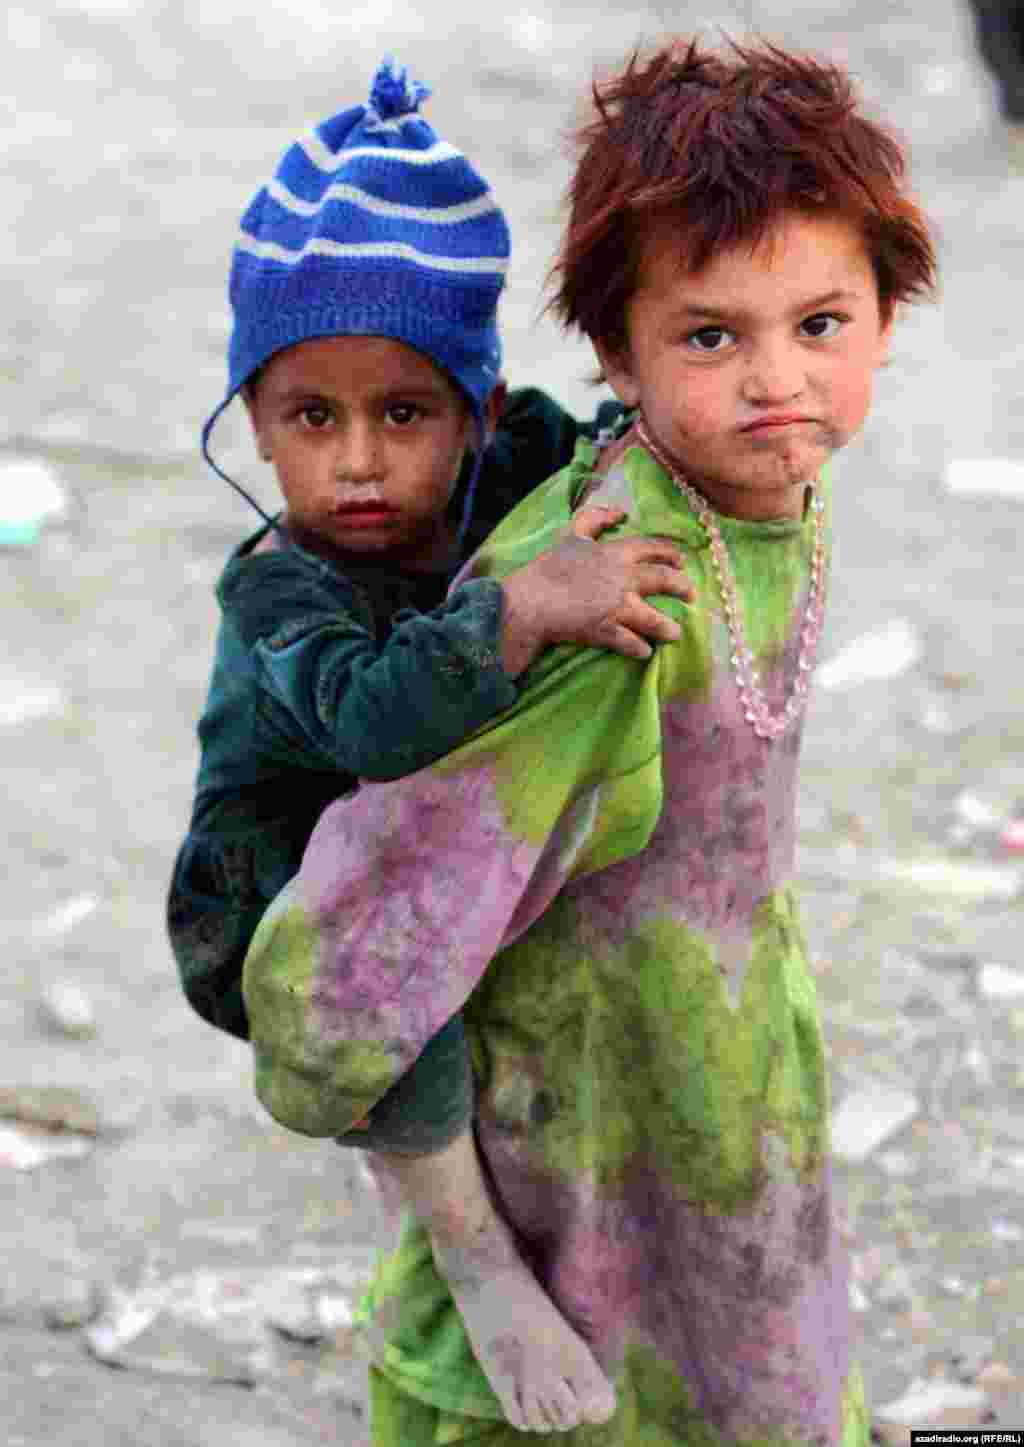 Children at a UN camp. Photo by RFE/RL's Radio Free Afghanistan - Many children in Afghanistan are orphans, as half of the country's population is reported to have lost family members in years of fighting.